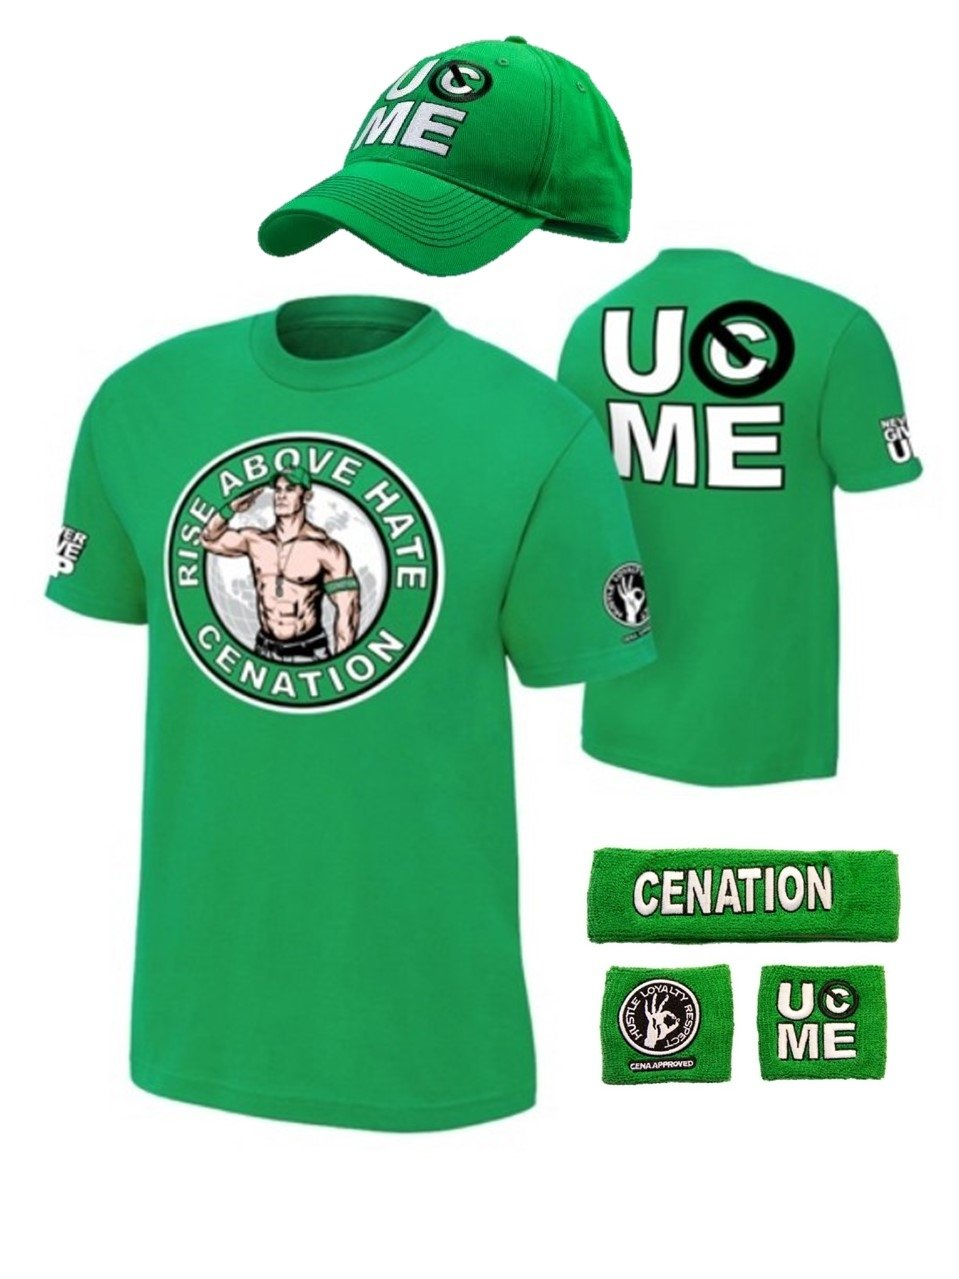 John Cena Never Give Up WWE Kids Boys Youth Costume-Green-S (6-7) by Freeze